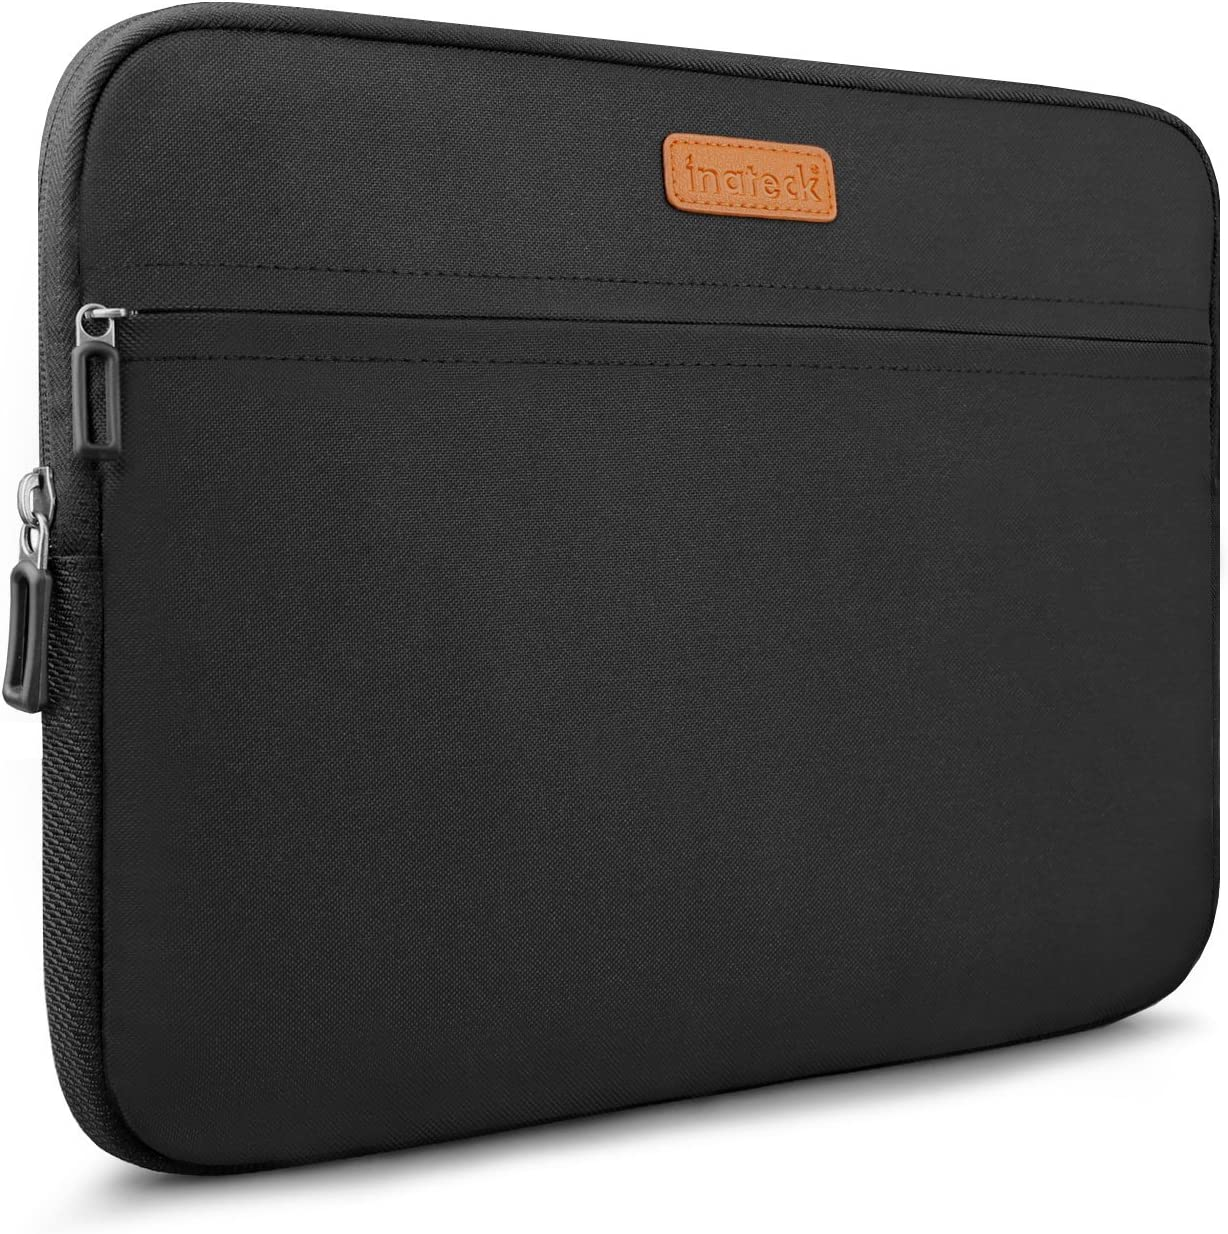 Inateck 15-15.4 Inch Laptop Sleeve Carrying Case Compatible 15'' MacBook Pro 2012-2015/Dell 15''/Ultrabooks/Notebooks Water-repellent Bag - Black